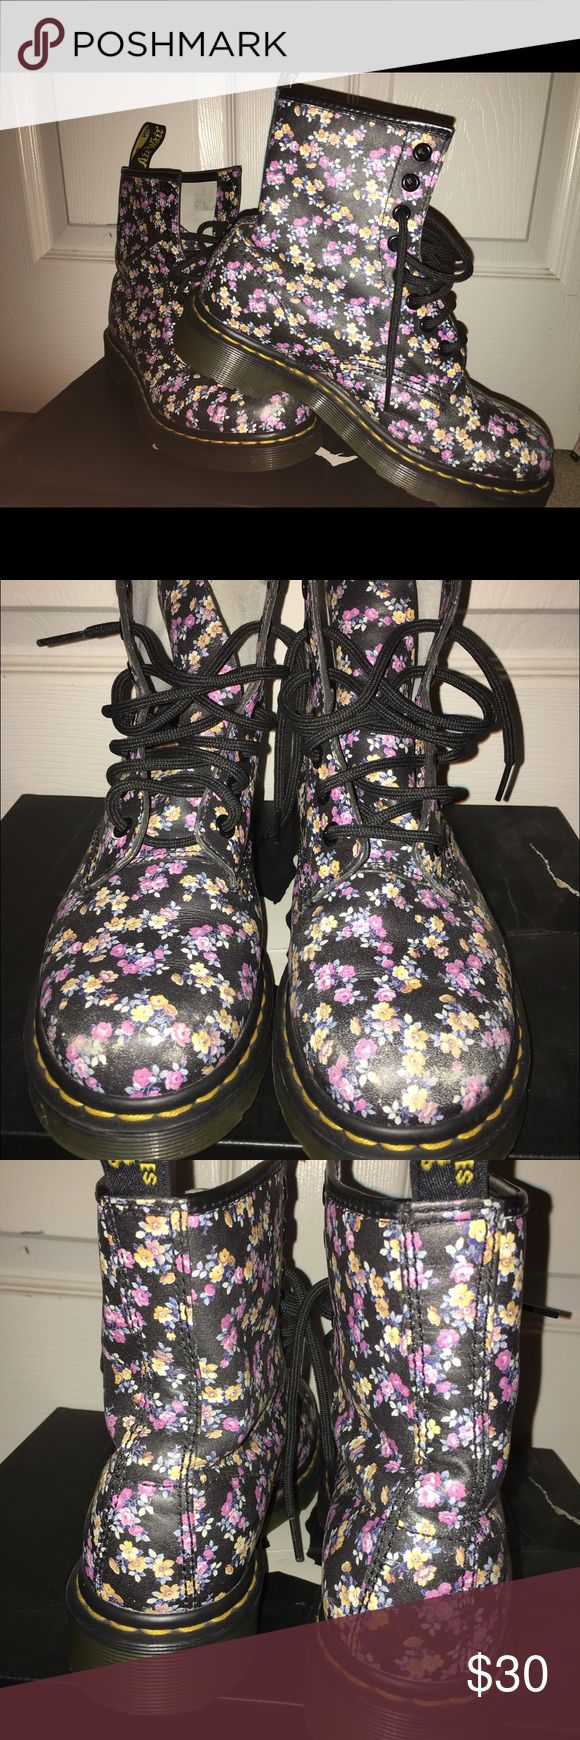 **Reserved** Dr Marten's 8 eye hole Floral sz 6 *Reserved** Doc Martens DR Marten's 8 eye hole Floral sz 6, black multi color floral pink and yellow. see last pic where shows toe area signs of wear.  Comfy as all Doc Martens are. Still in great shape. Dr. Martens Shoes Combat & Moto Boots